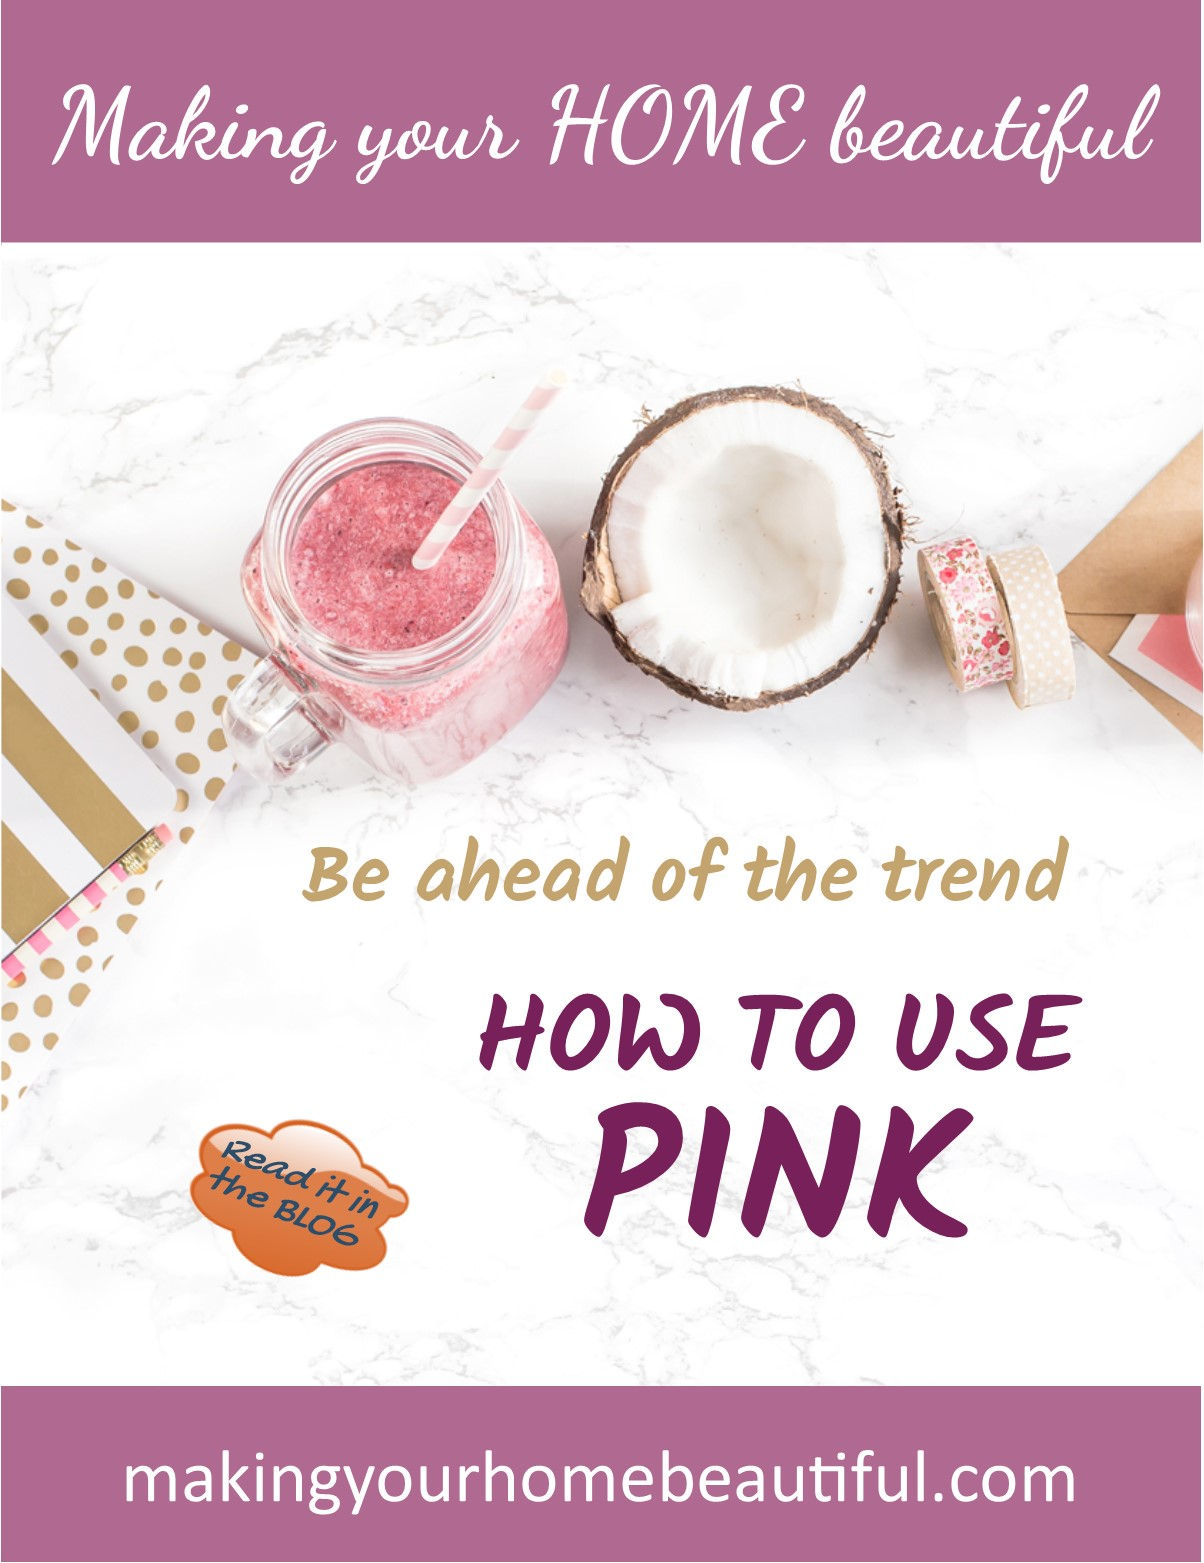 Let me show you how to use pink in an interior. A hot colour trend for 2017 - see the many ways to use it in my blog post